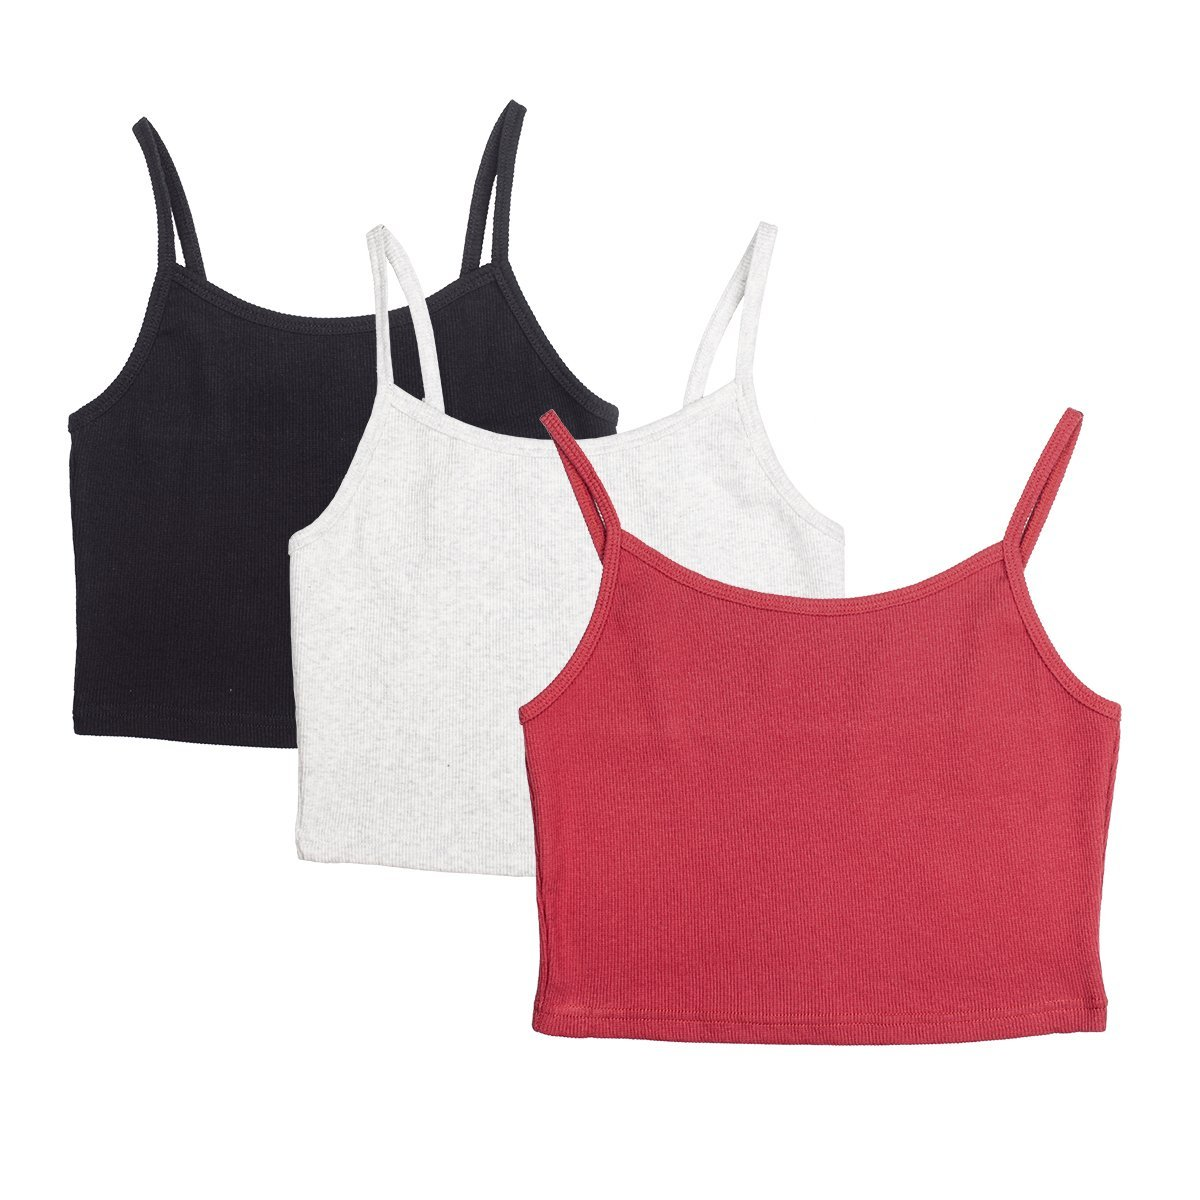 icyzone Undershirts Tank Tops for Women - Spaghetti Strap Cotton Crop Top Cami(Pack of 3)